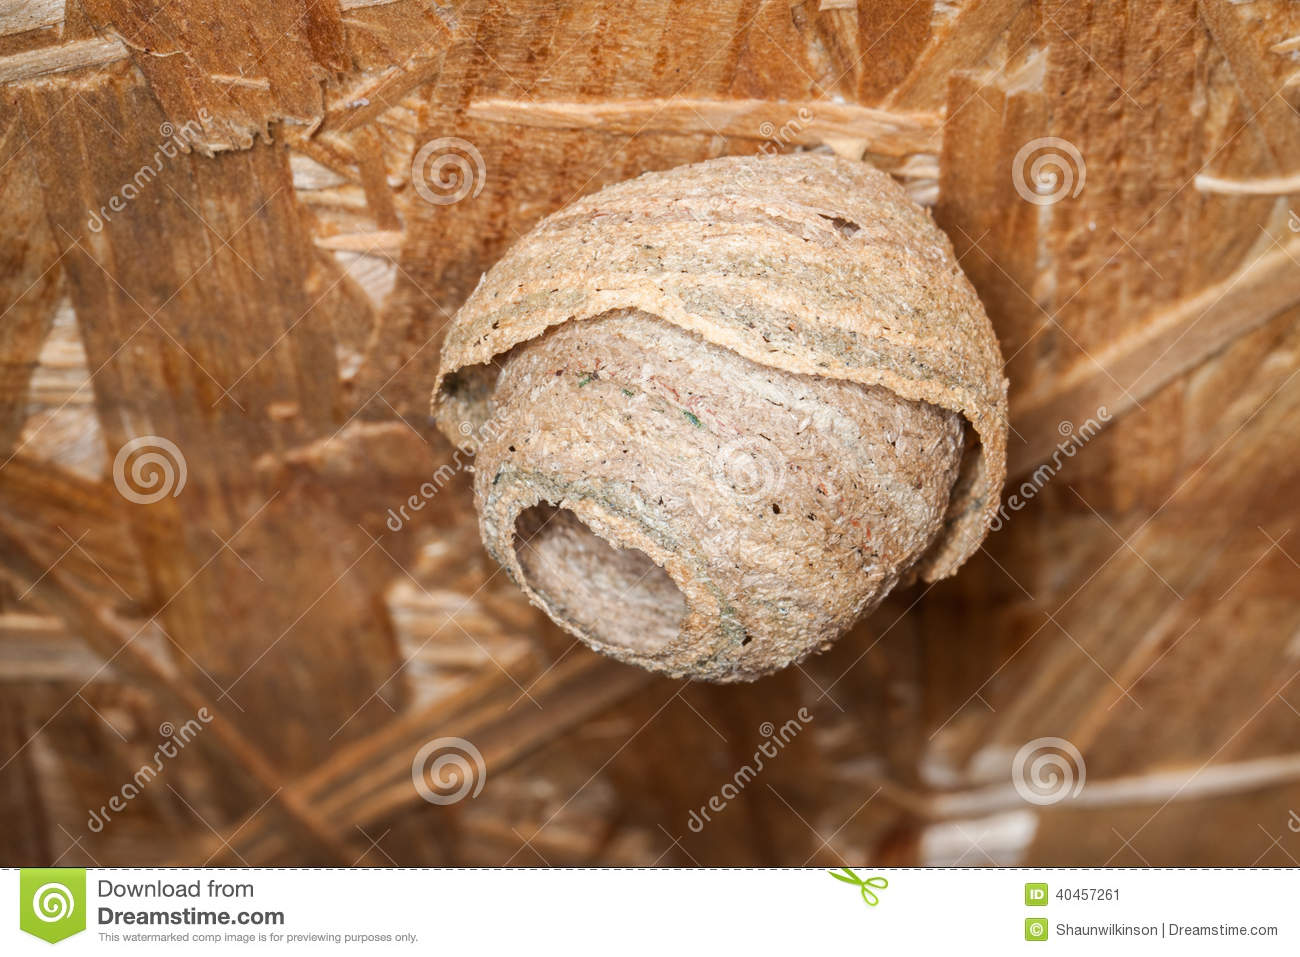 how to kill a small wasps nest